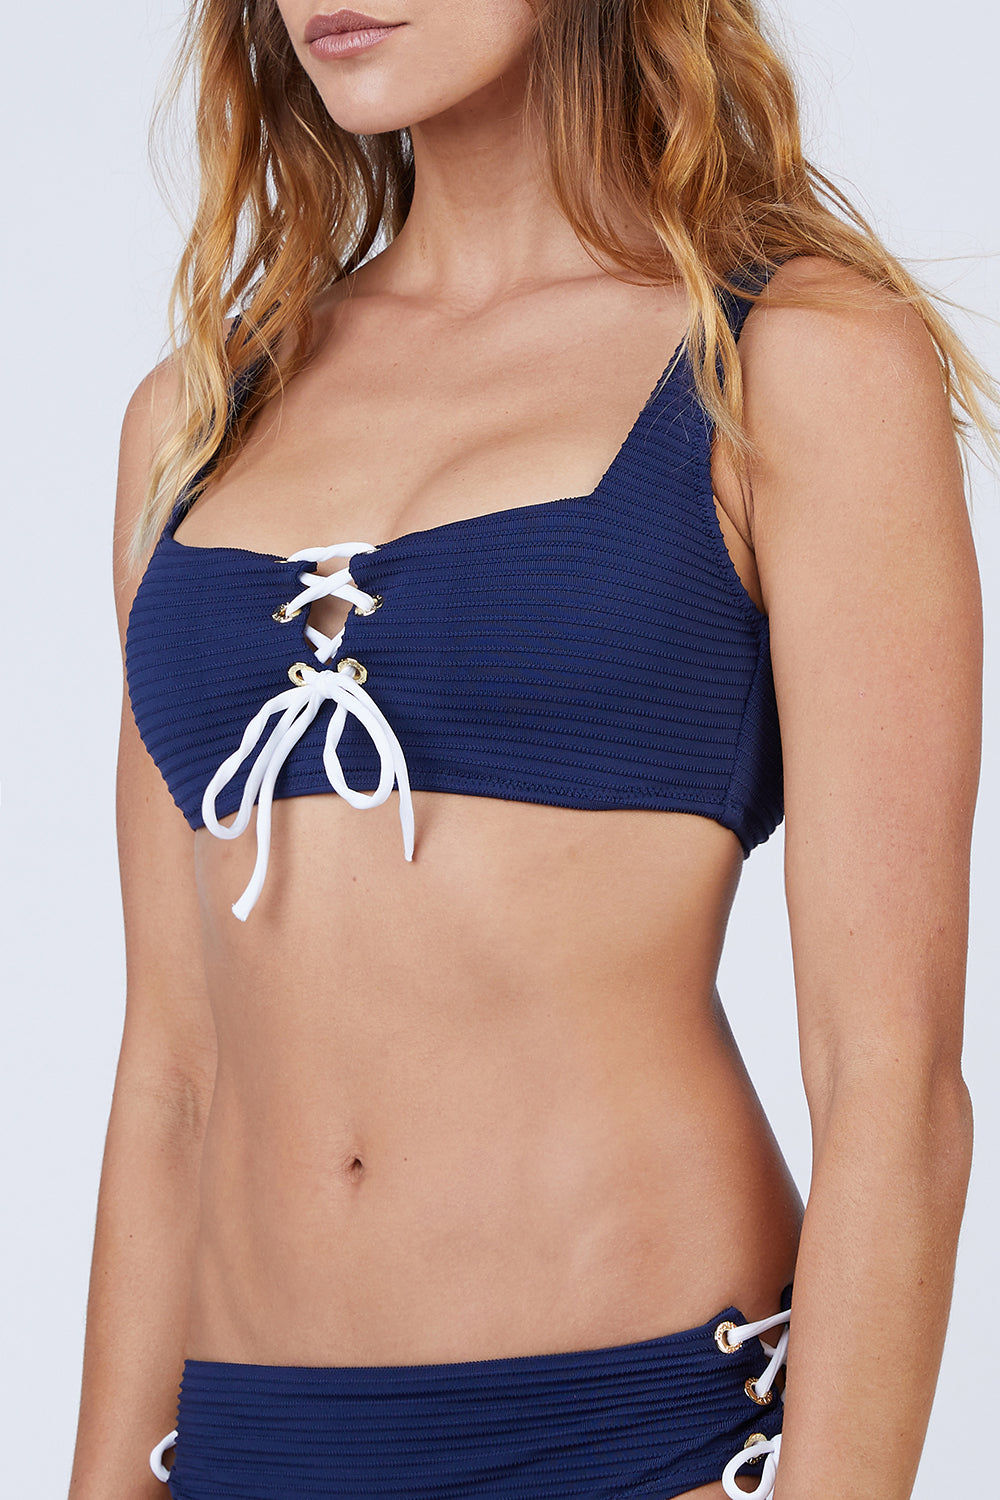 HEIDI KLEIN Lace Square Neck Bikini Top - Navy Bikini Top   Navy  Heidi Klein Lace Square Neck Bikini Top - Navy. Features:  Fully lined in soft lining for ultimate comfort. Fine elastic and binding along under bust and back strap are delicate and lightly supportive. Soft side seam boning to enhance bust support. Wide neck strap and elasticated under bust is for additional comfort and support. Front View